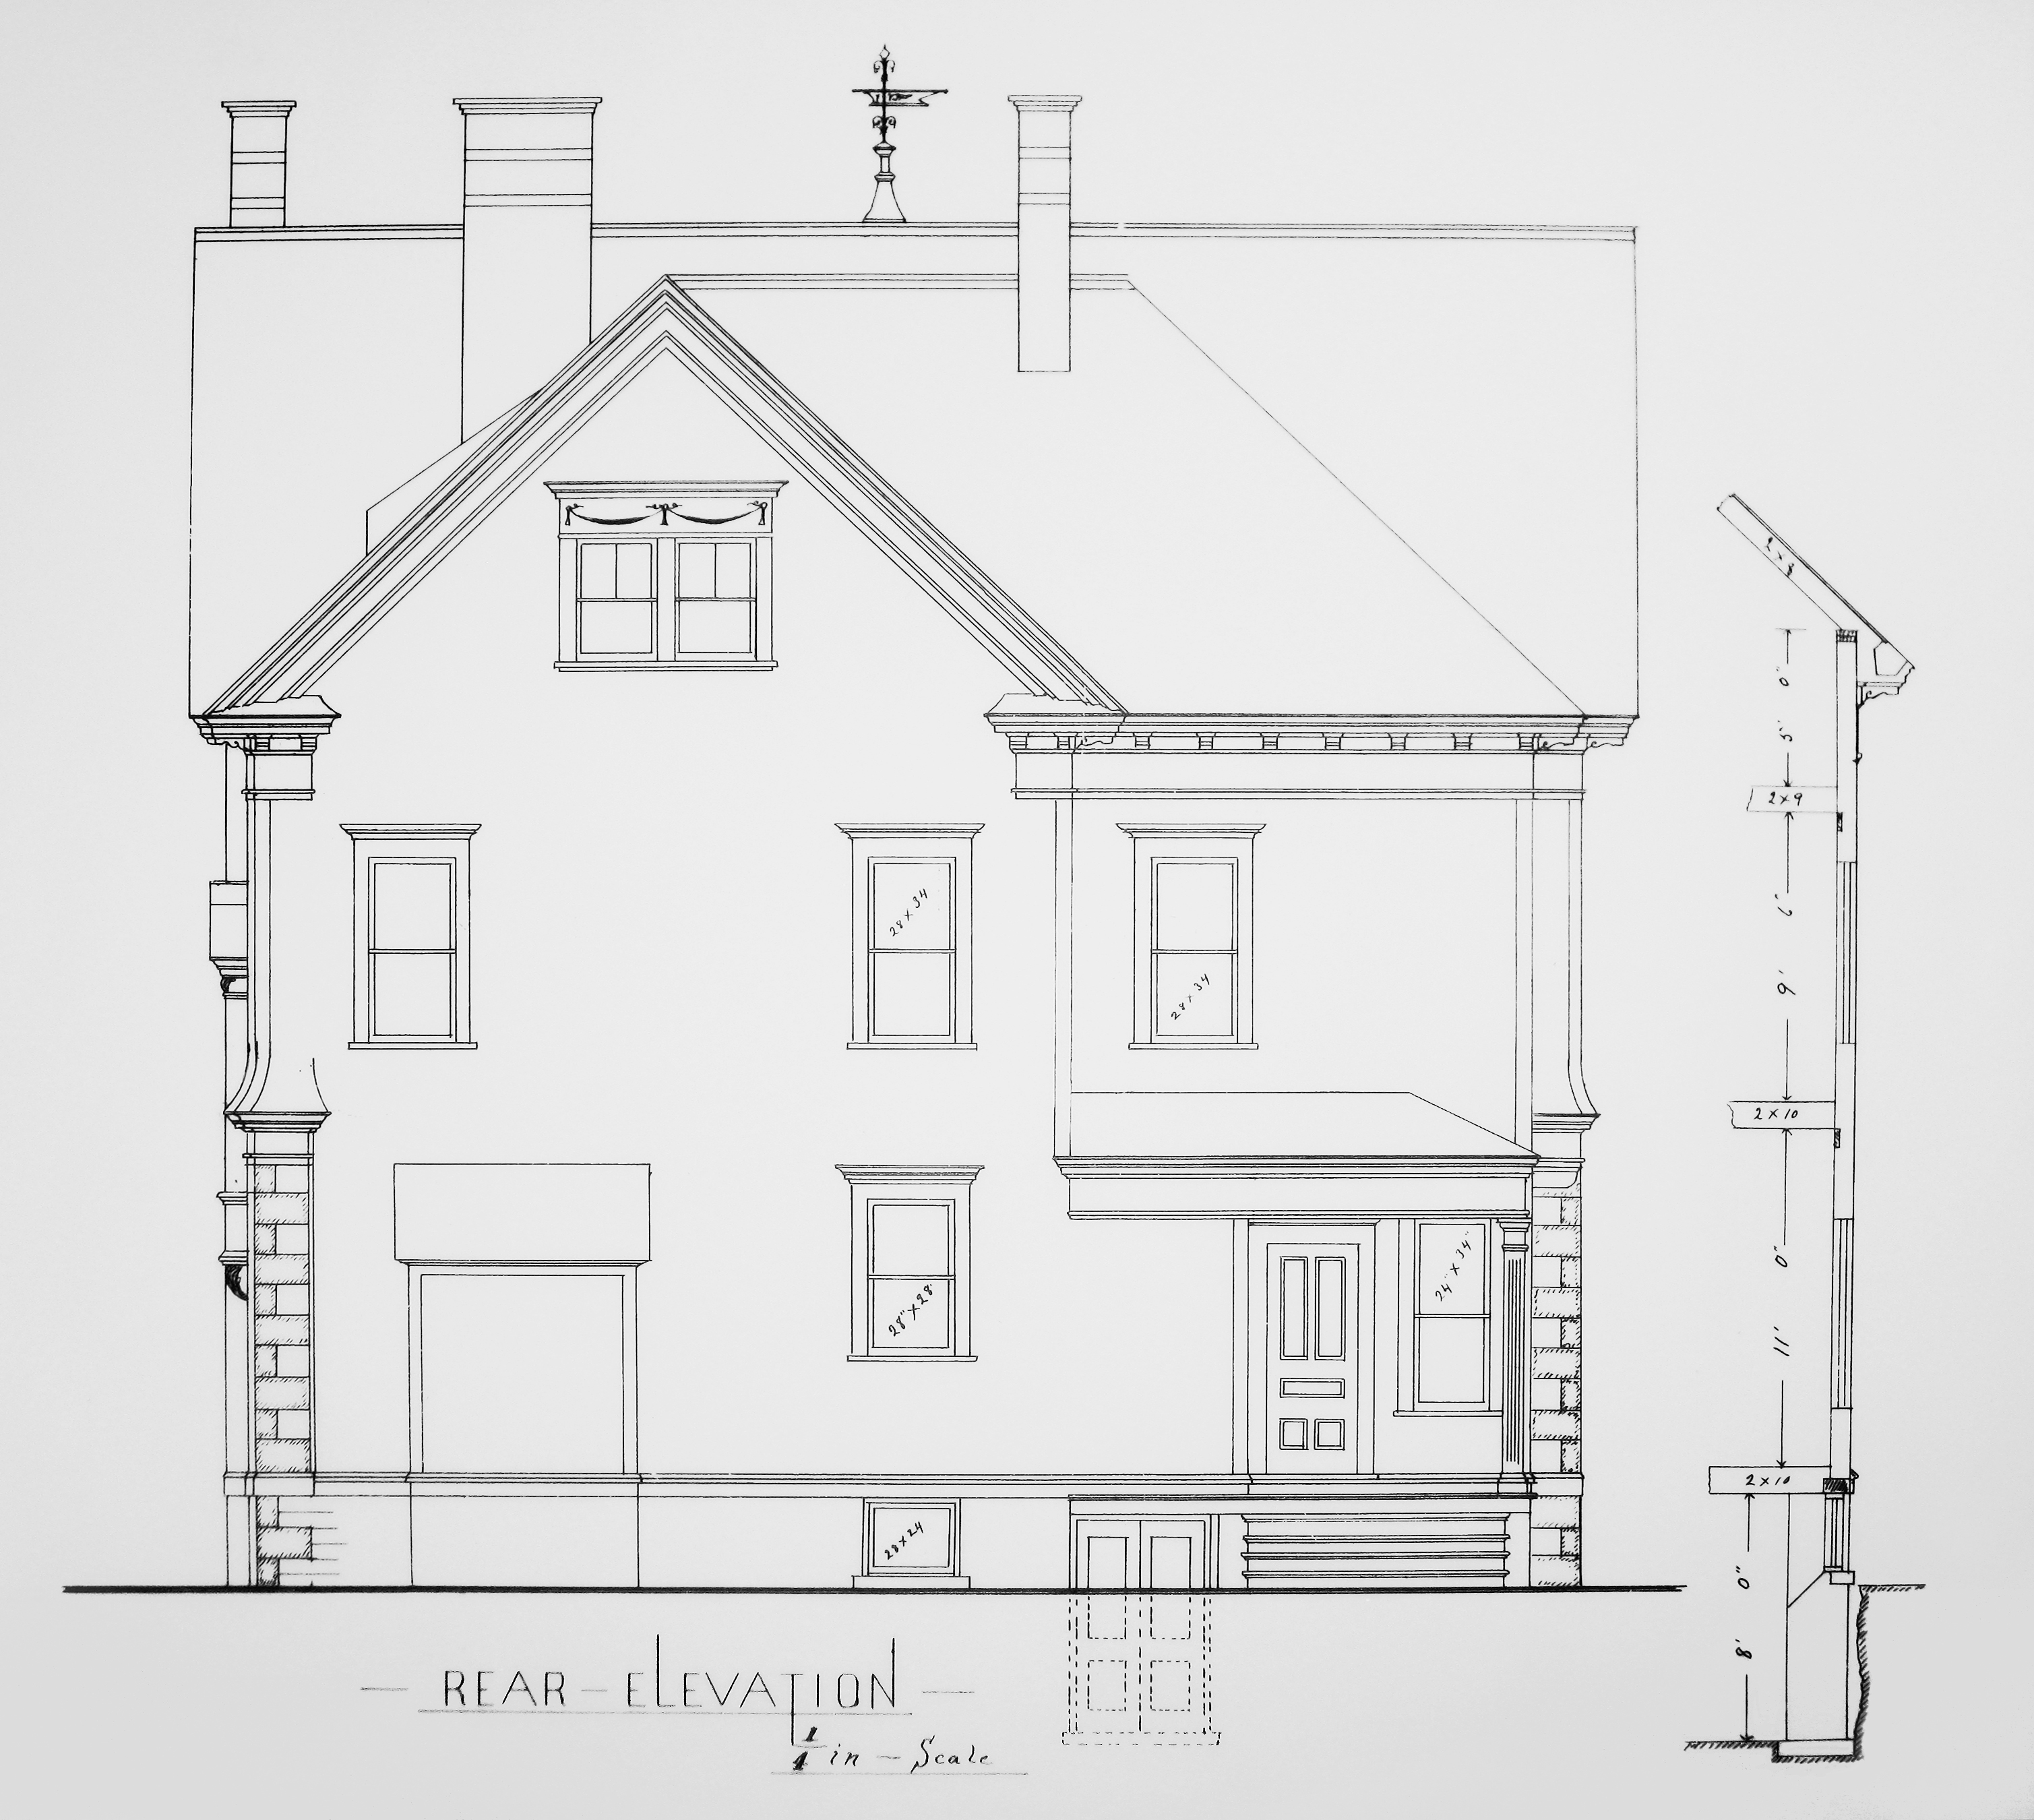 Architectural documents john ashberys nest blueprint gallery rear elevation malvernweather